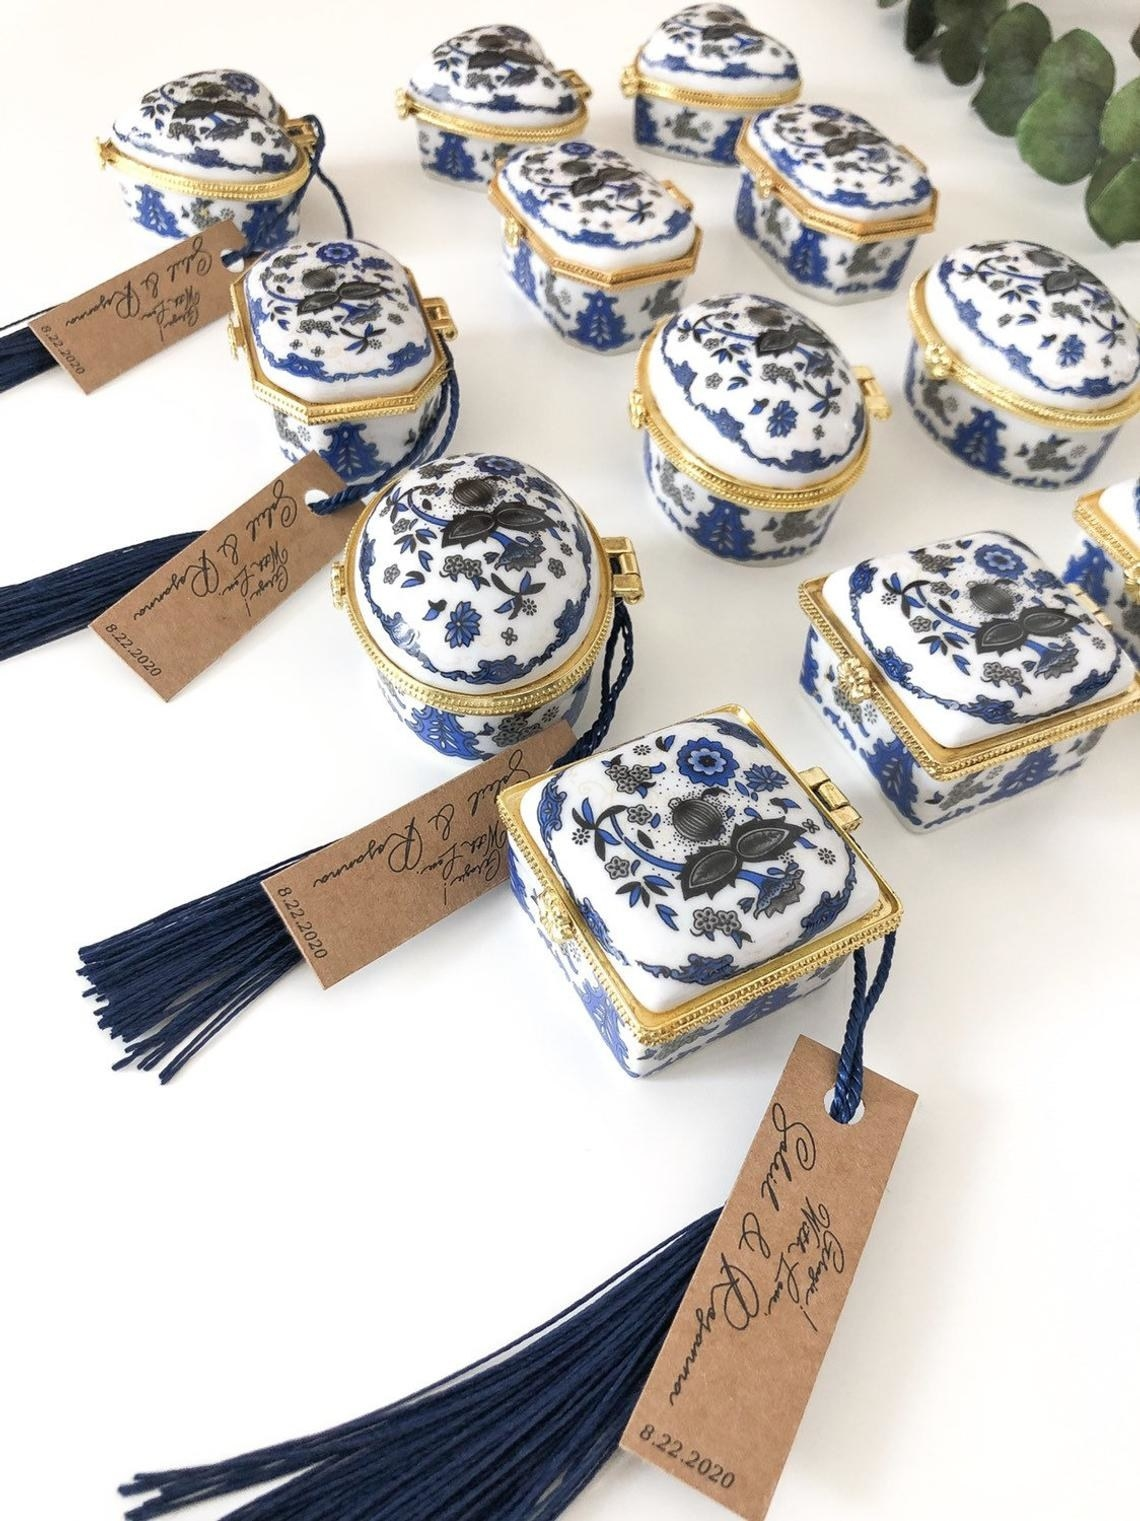 the wedding favor boxes made of the traditional porcelain with the blue floral print with blue fringe tassels hanging from them and a brown card with the name